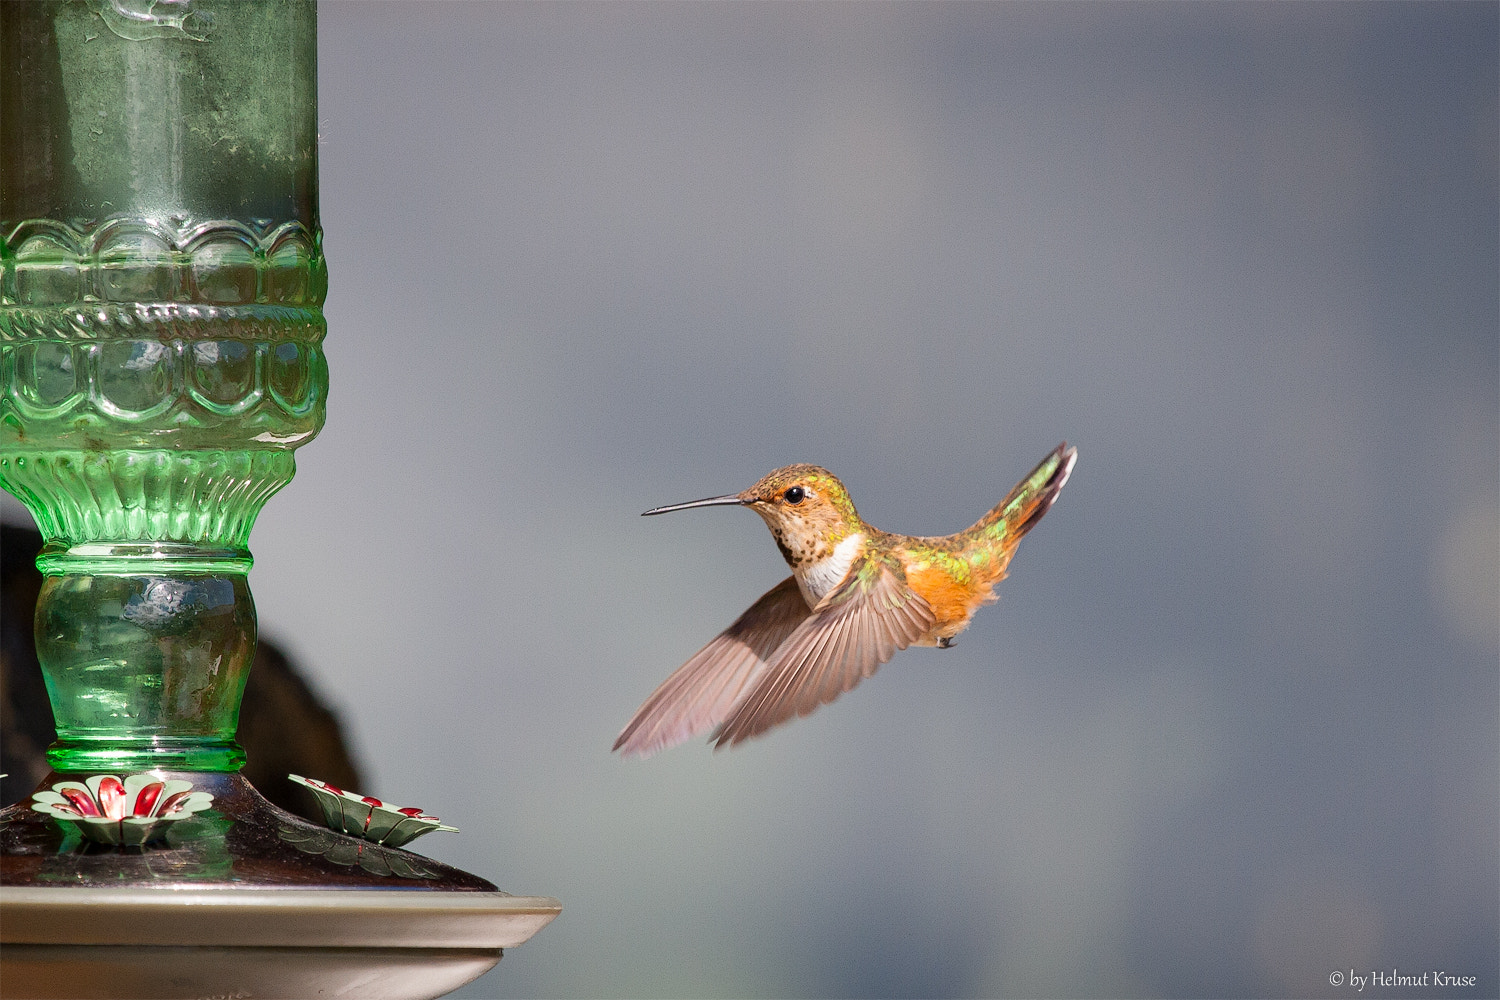 Photograph A Hummingbirds in front of a feeder, Canada by Helmut Kruse on 500px